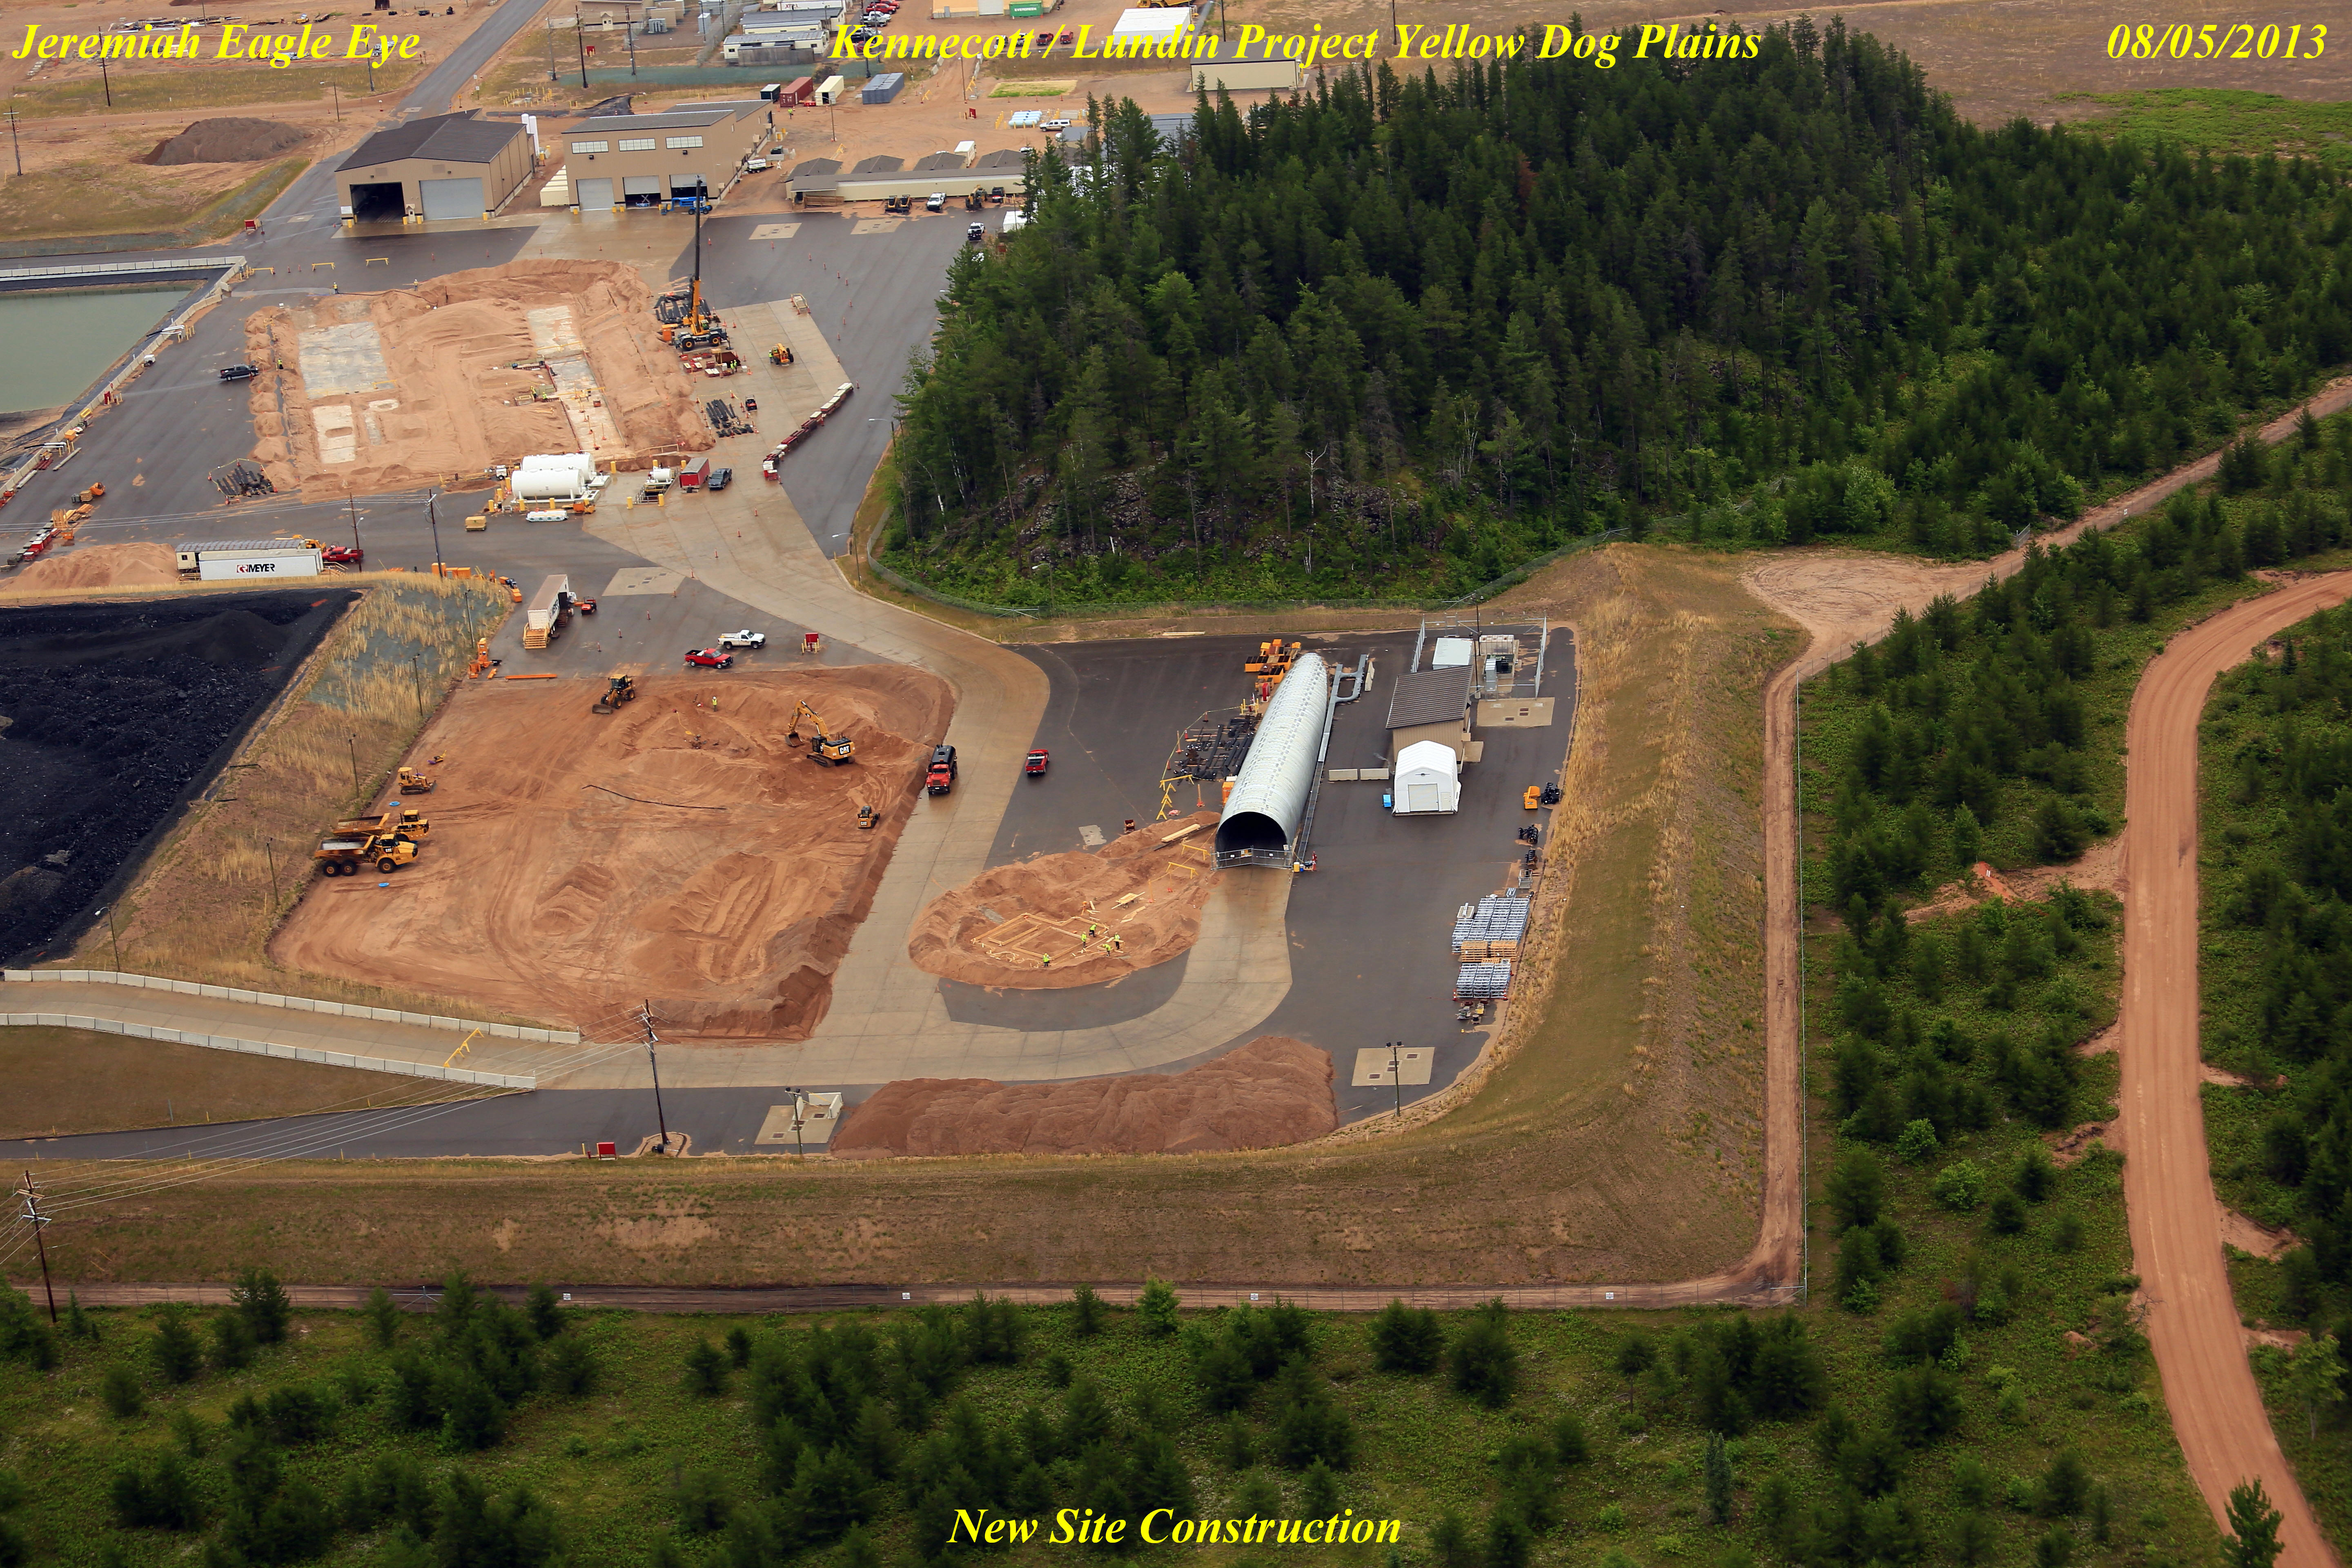 Lundin Eagle Mine on the Yellow Dog Plains, site construction in 2013